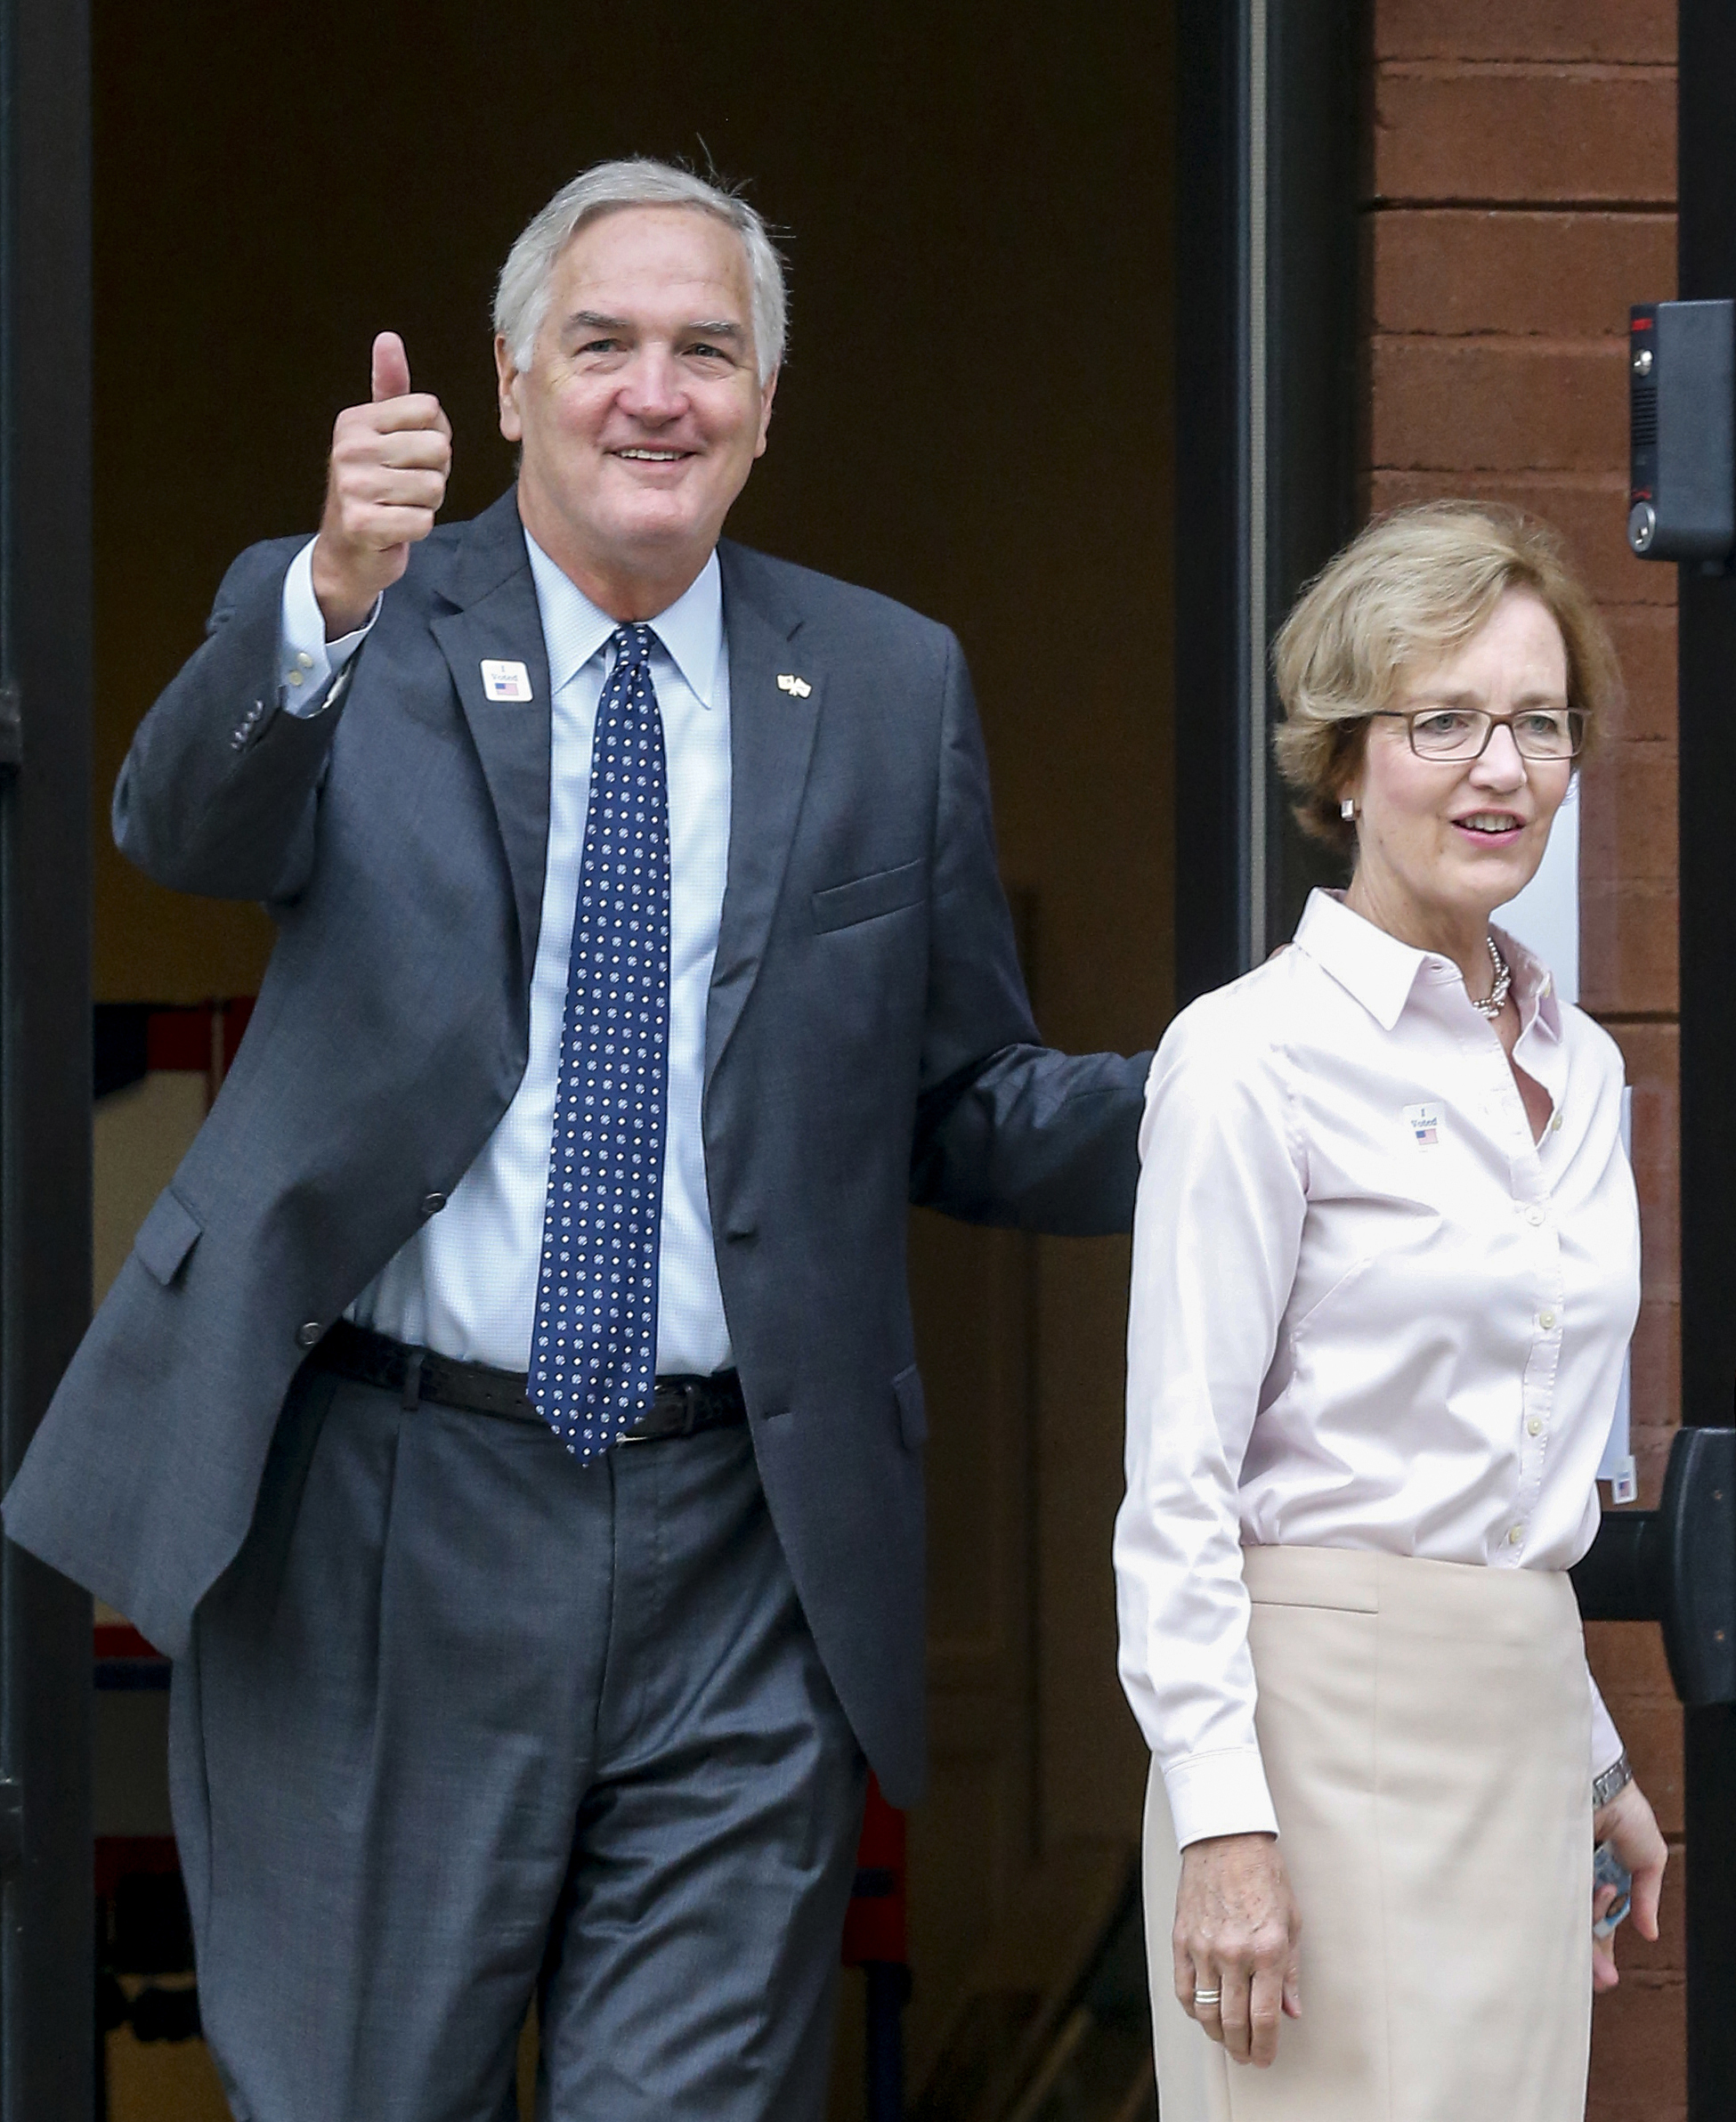 Roy Moore, Luther Strange advance to runoff in Alabama Senate election